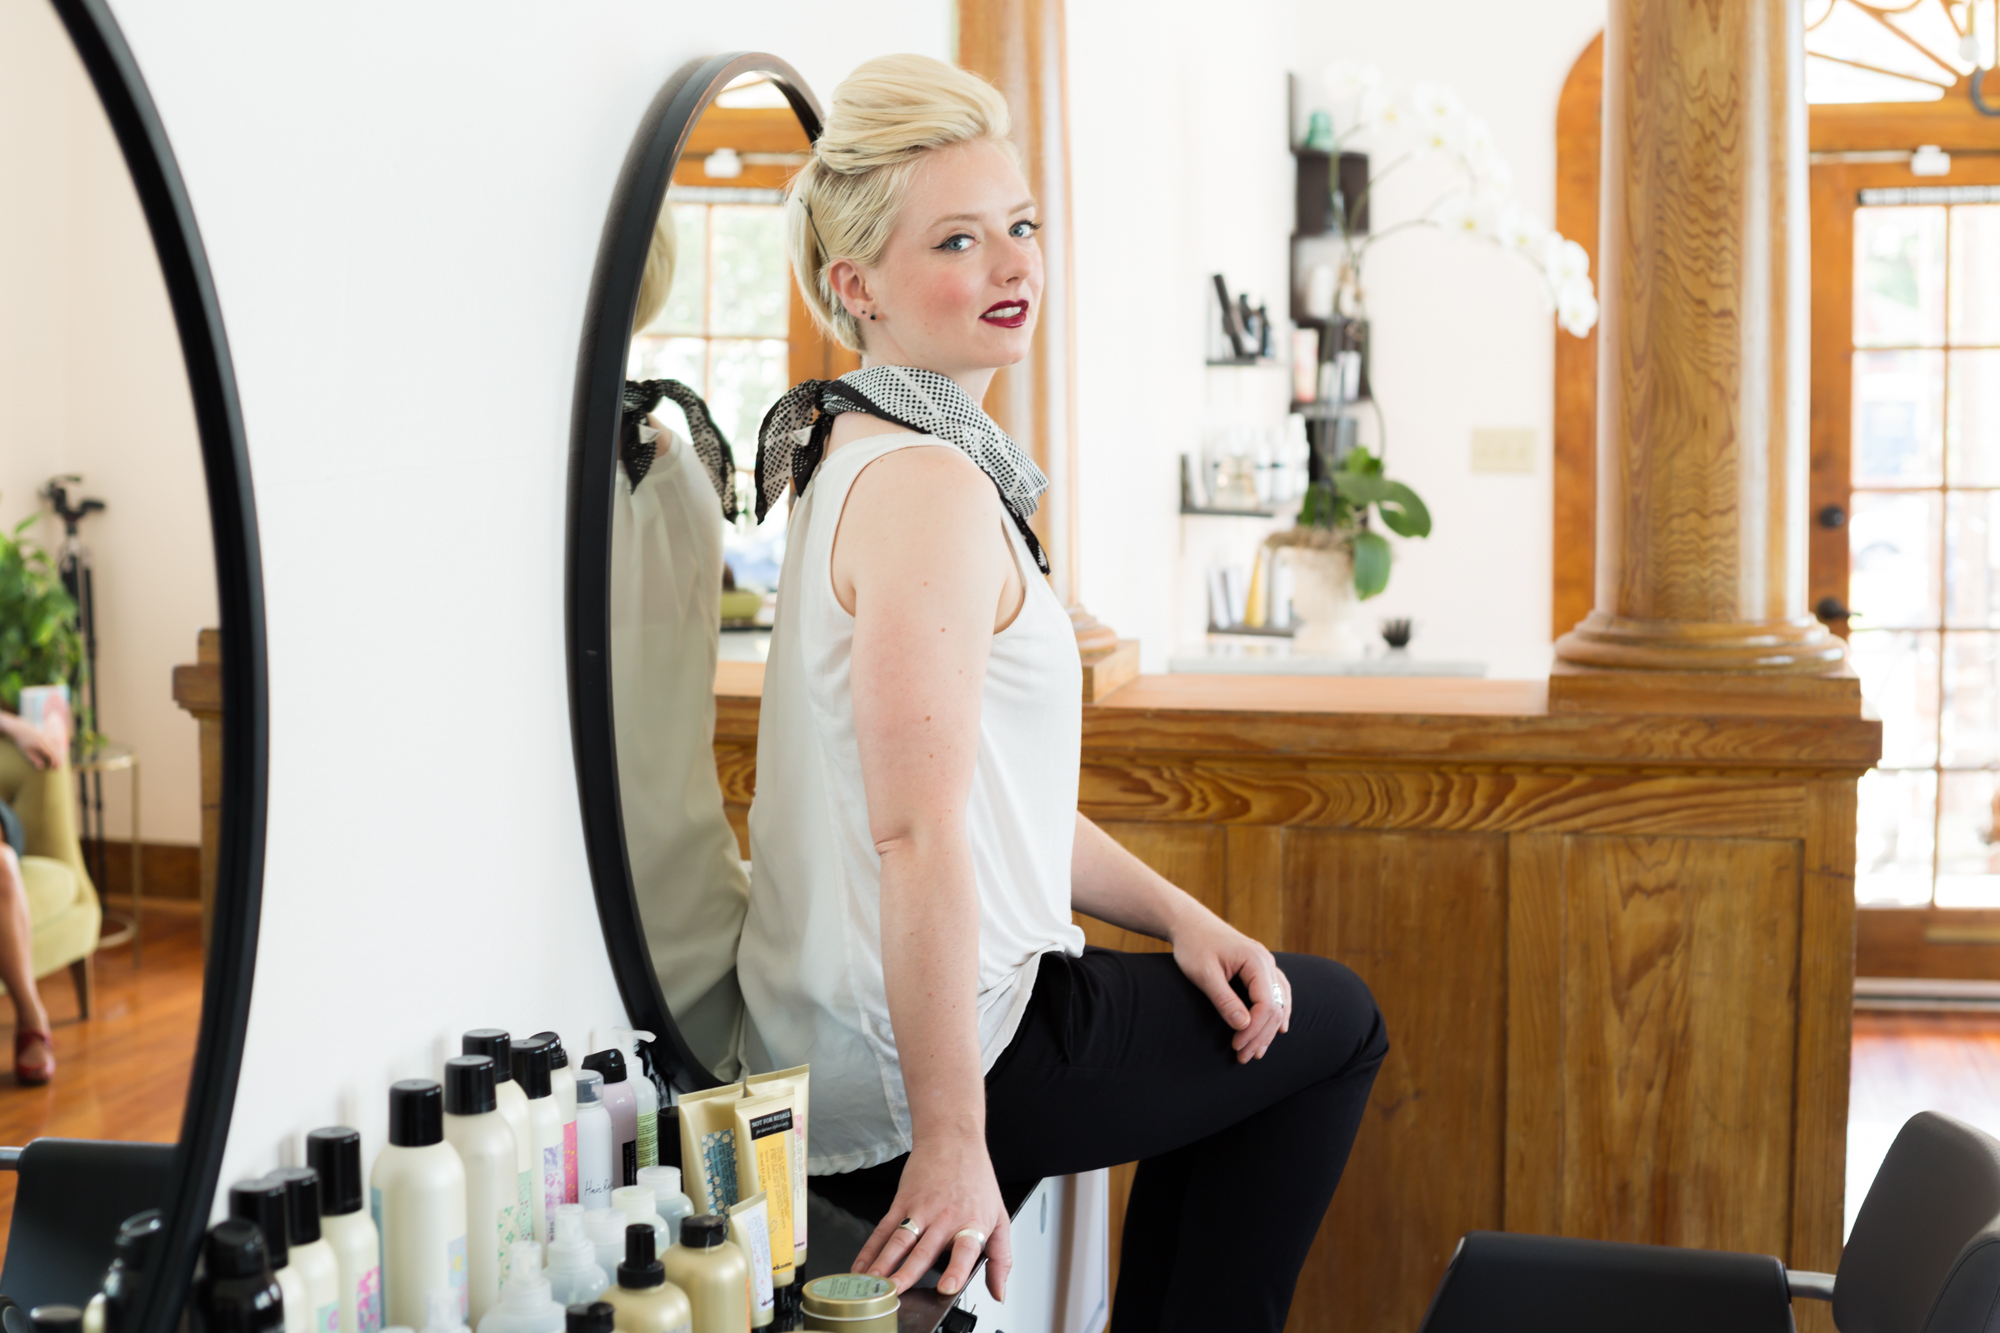 """Jo Morris - Stylist   Colorist  Jo has always loved cutting and styling hair, particularly the vintage looks. As a graduate of John Jay Beauty College, she started her career at Sweet Olive from our beginning in 2017 as an assistant to Andrea. She has rapidly grown her clientele by always listening to the individual needs fo her clients. Jo's great hair cutting styles have expanded over the years to include creative color clients as well. Consult with Jo today!  Fun Facts: Jo's skills are not at all limited to cosmetology, she is also a talented singer & musician.  Pets: Jo LOVES Cats.  Review:  """"I went in to Sweet Olive a couple of days ago for a haircut with Jo. I'd been to the salon before and have always gotten great cuts, but the other day was really exceptional.   In the last 6 months, I've lost about half the volume of my hair due to a recent change in medication. The meds are necessary, and the hair loss has been devastating. It feels vain to say, but the thinning made me so self-conscious that it was starting to significantly impact my quality of life. I booked a last minute appointment that morning in a desperate attempt to do SOMETHING that would make me feel better.   During my appointment, Jo listened to my concerns and the struggles I've been having with my hair. She came up with several ideas about how to hide the thin parts and work with my features to create a cut that would feel more comfortable. She was responsive to all of my questions and for the first time in a long time, I felt like it was possible to be happy about the way my hair looked.   Throughout the entire cut Jo kept me informed about what she was doing and why, and listened to my feedback. She gave me an absolutely gorgeous cut that far exceeded my expectations. I came in feeling so low about how I looked and when she was finished not only did I feel like myself again, I felt beautiful.   Thanks Sweet Olive for the much needed boost and Jo, you are the best!"""" -   Alissa Luis"""